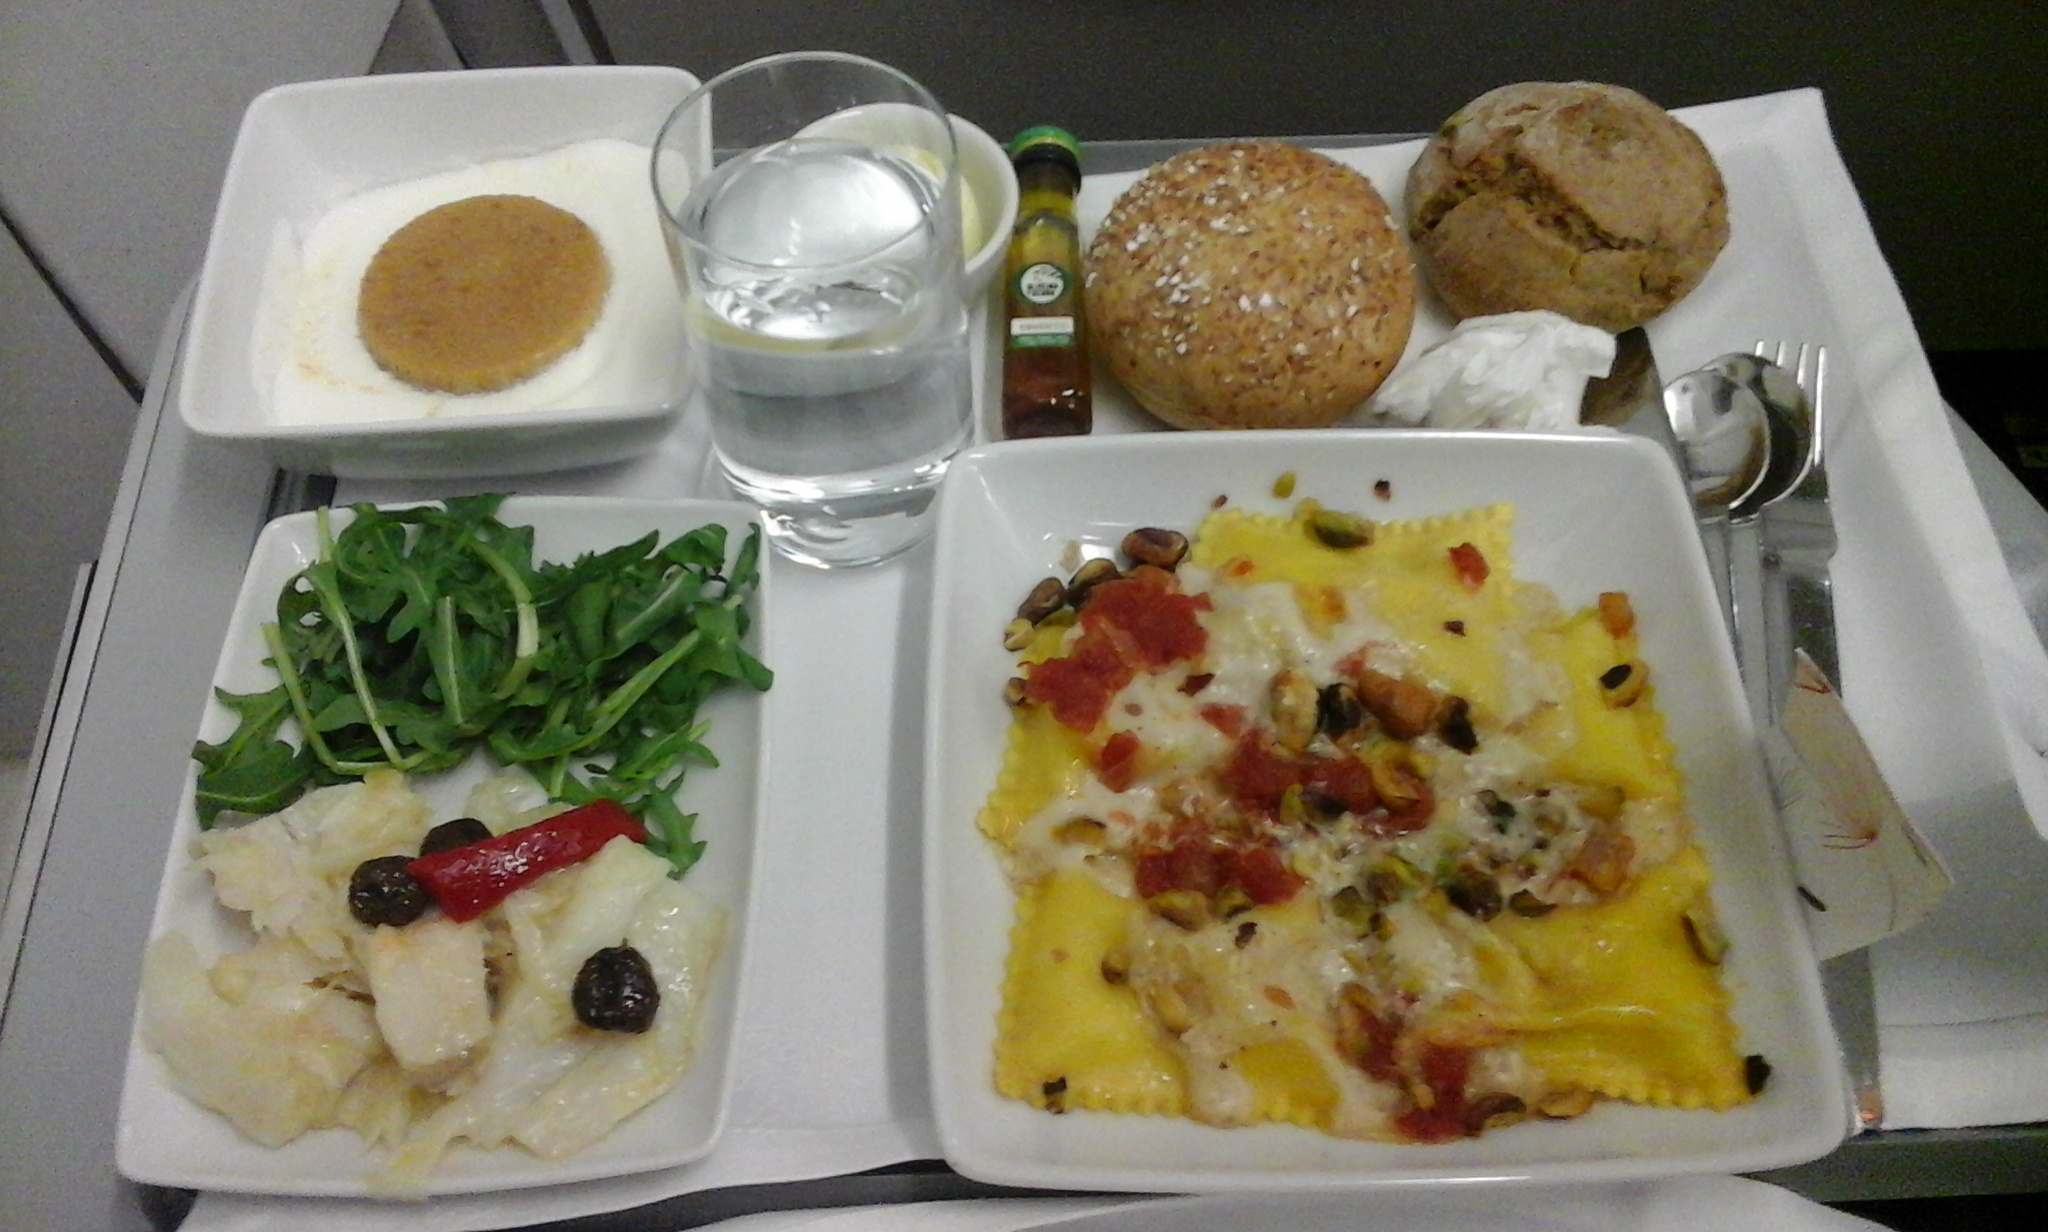 TAP Airlines Business class food. (Sea food based)